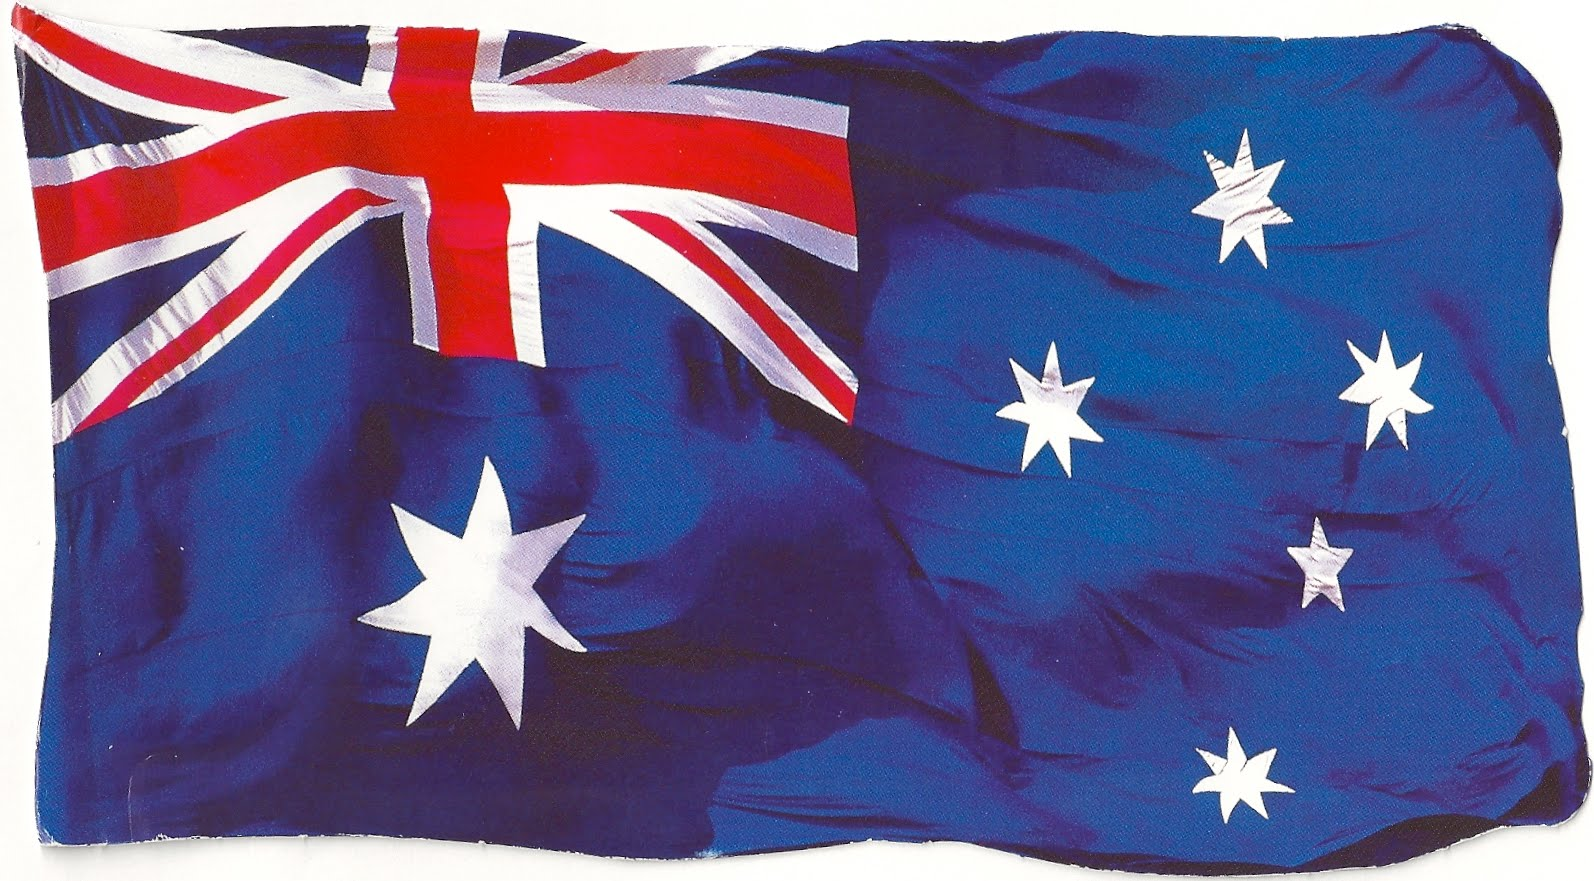 Australia Flag Wallpaper